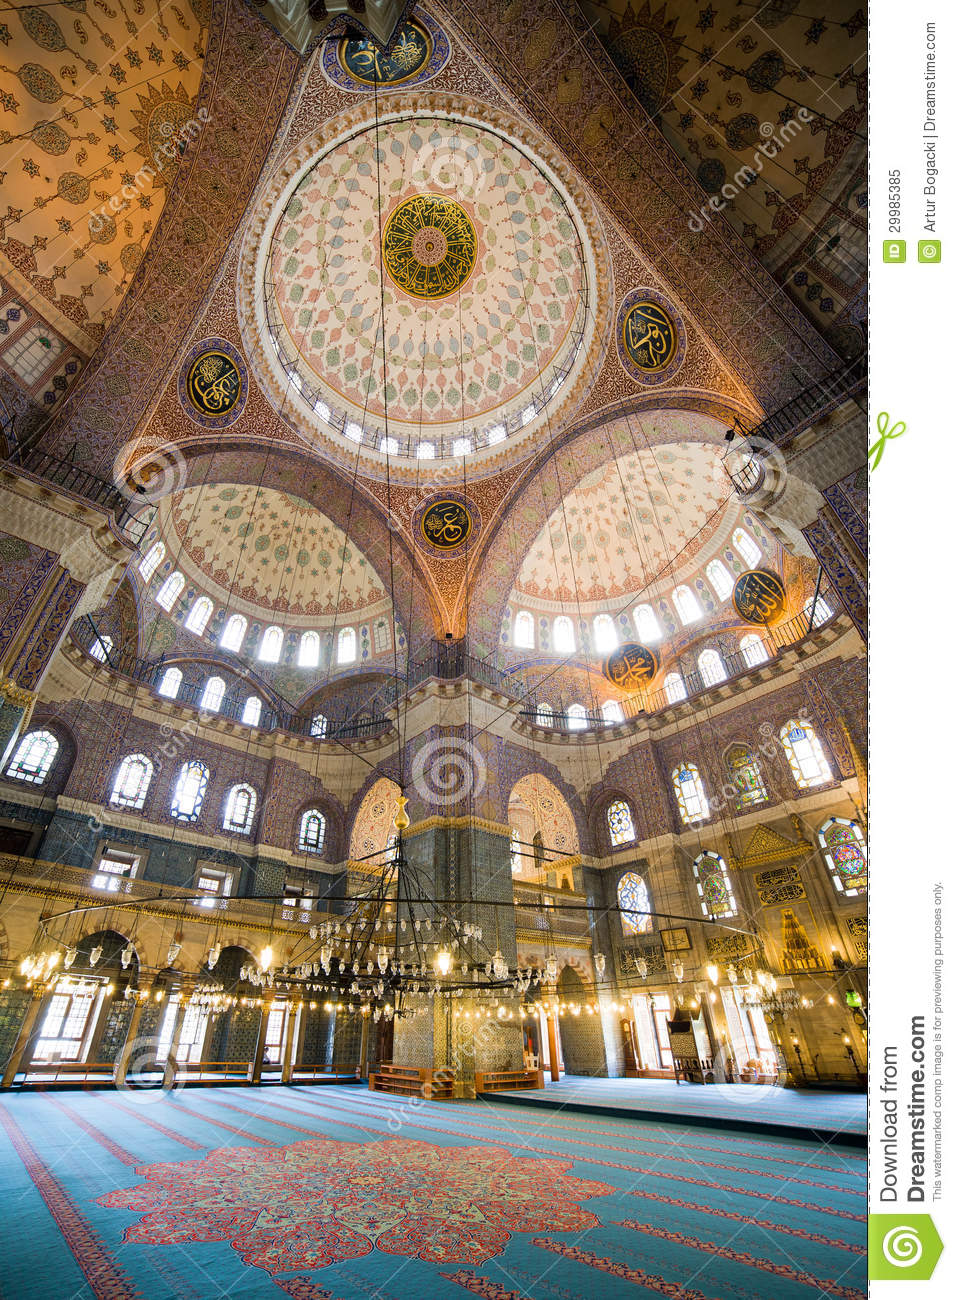 Mosque Clipart Check Out Mosque Clipart CnTRAVEL